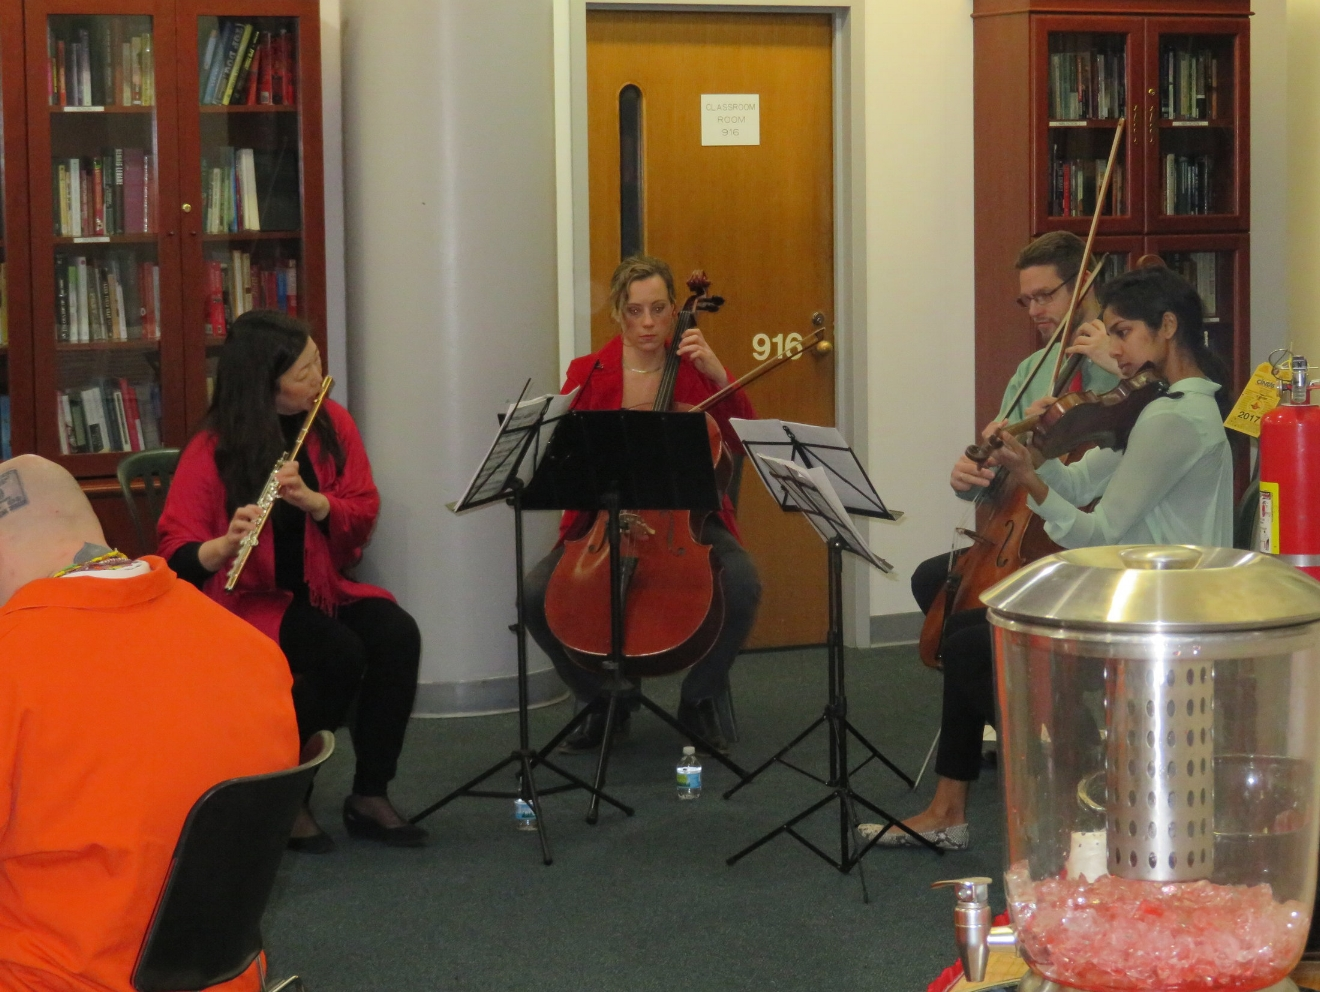 Alumni and faculty perform at a correctional center in Chicago